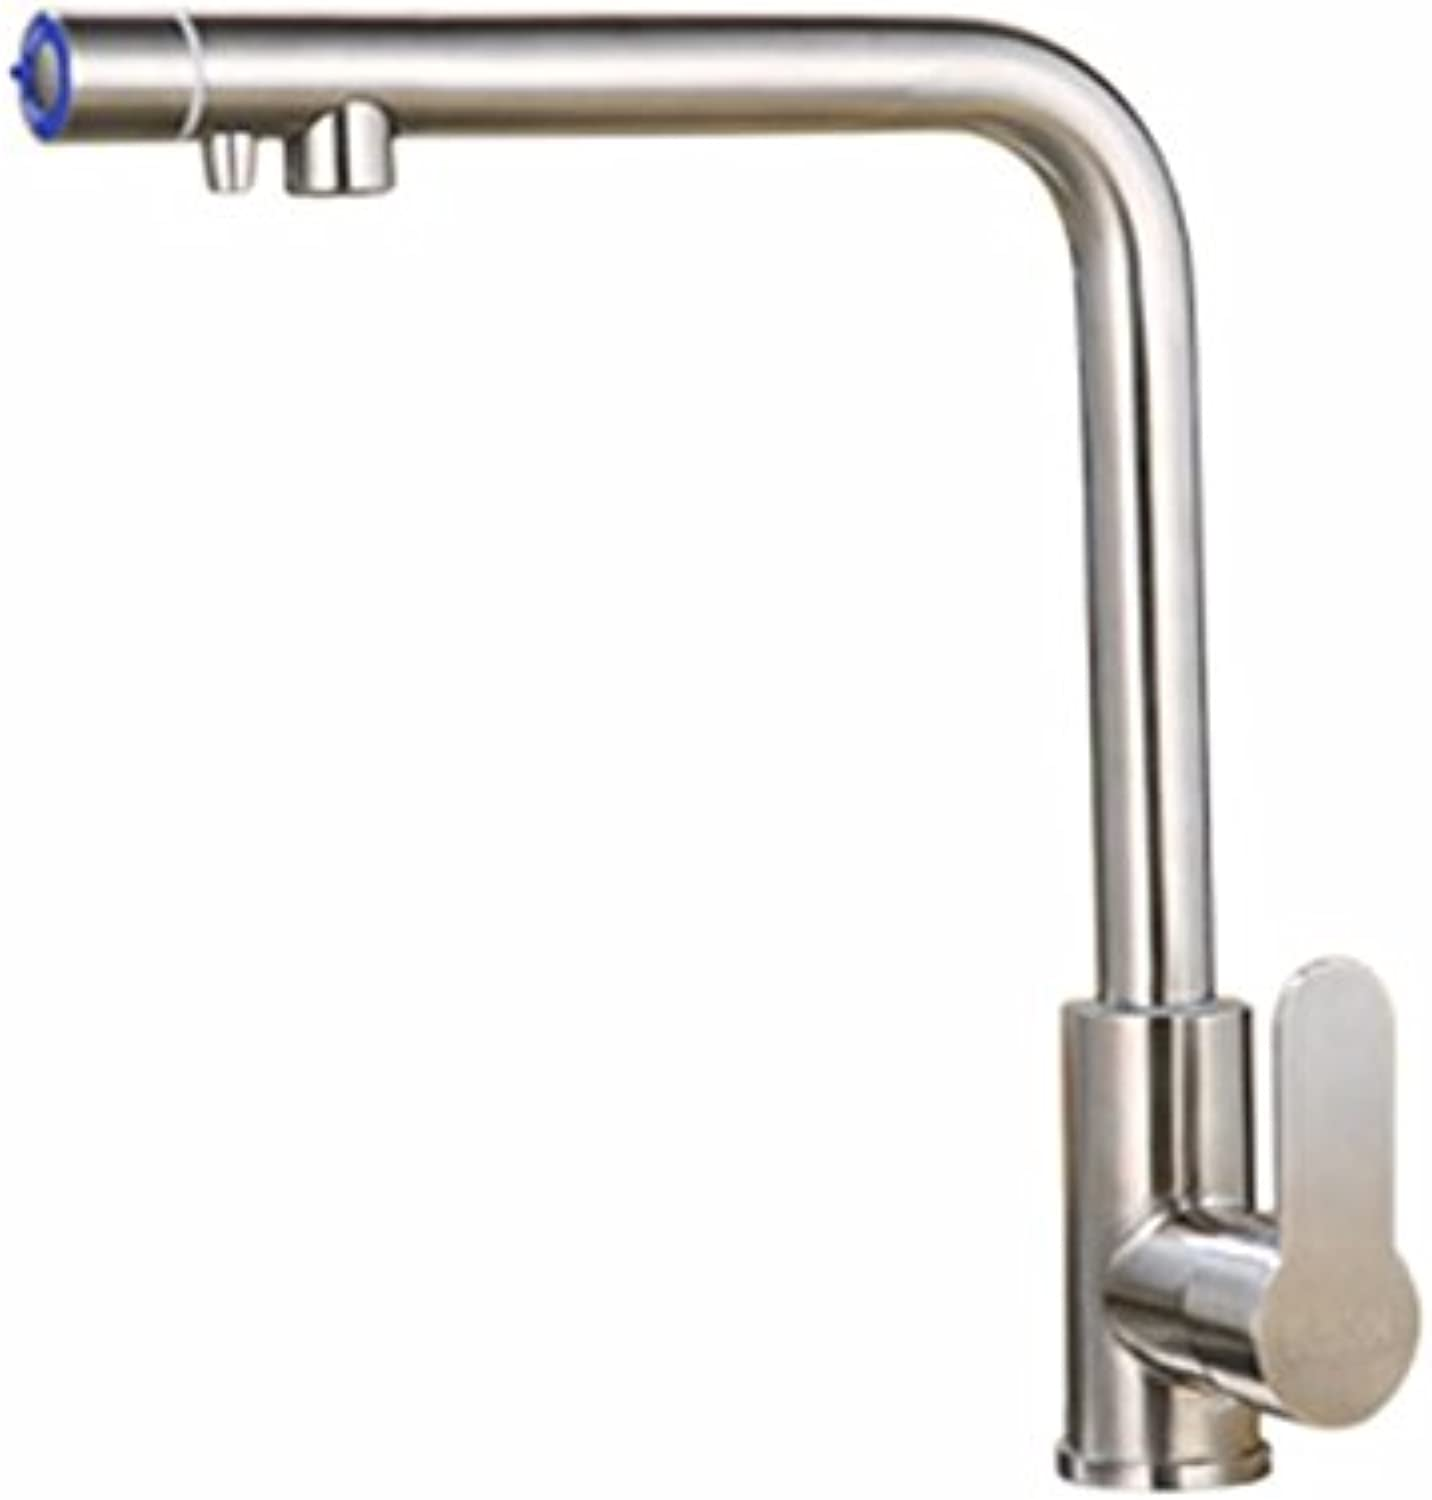 Hlluya Professional Sink Mixer Tap Kitchen Faucet 304 Stainless Steel, hot and cold, the kitchen sink faucet 3